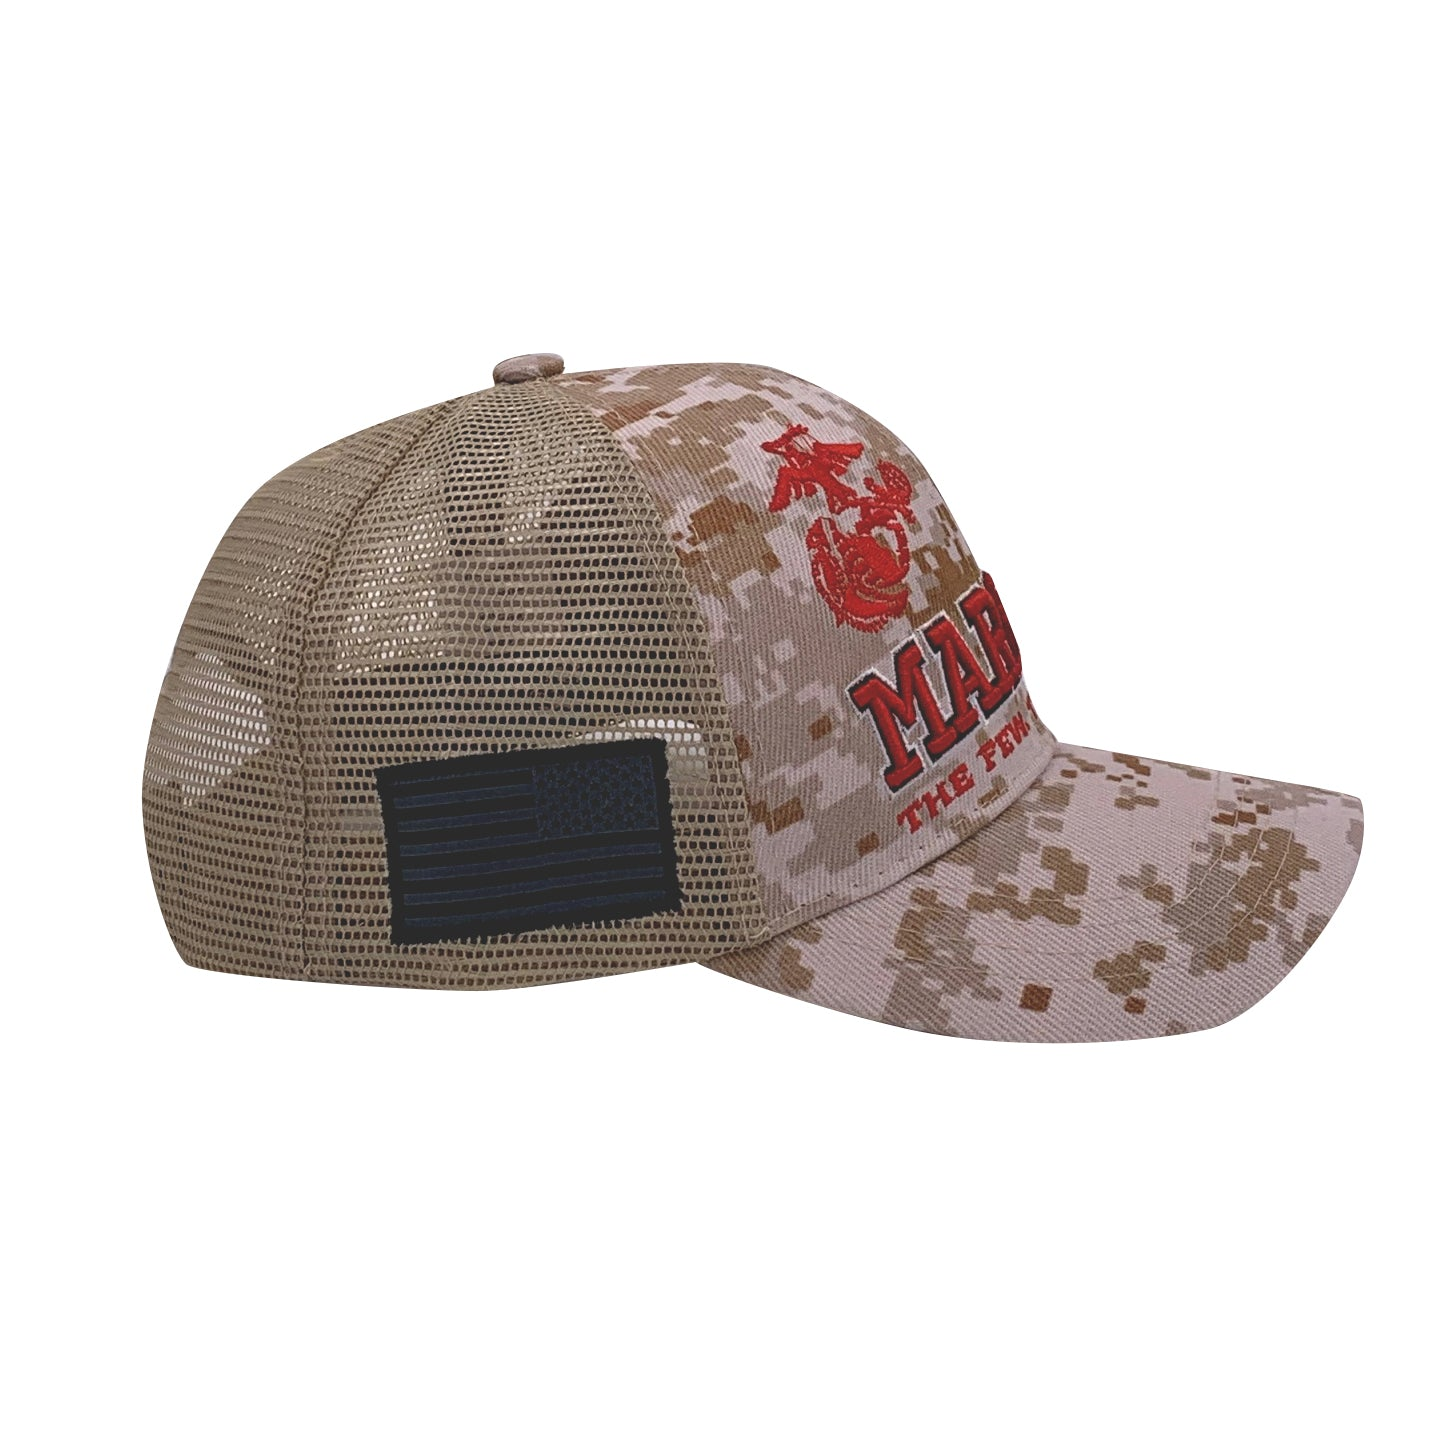 United States Marine Corps Battle Flag Trucker Cap by Icon Sports